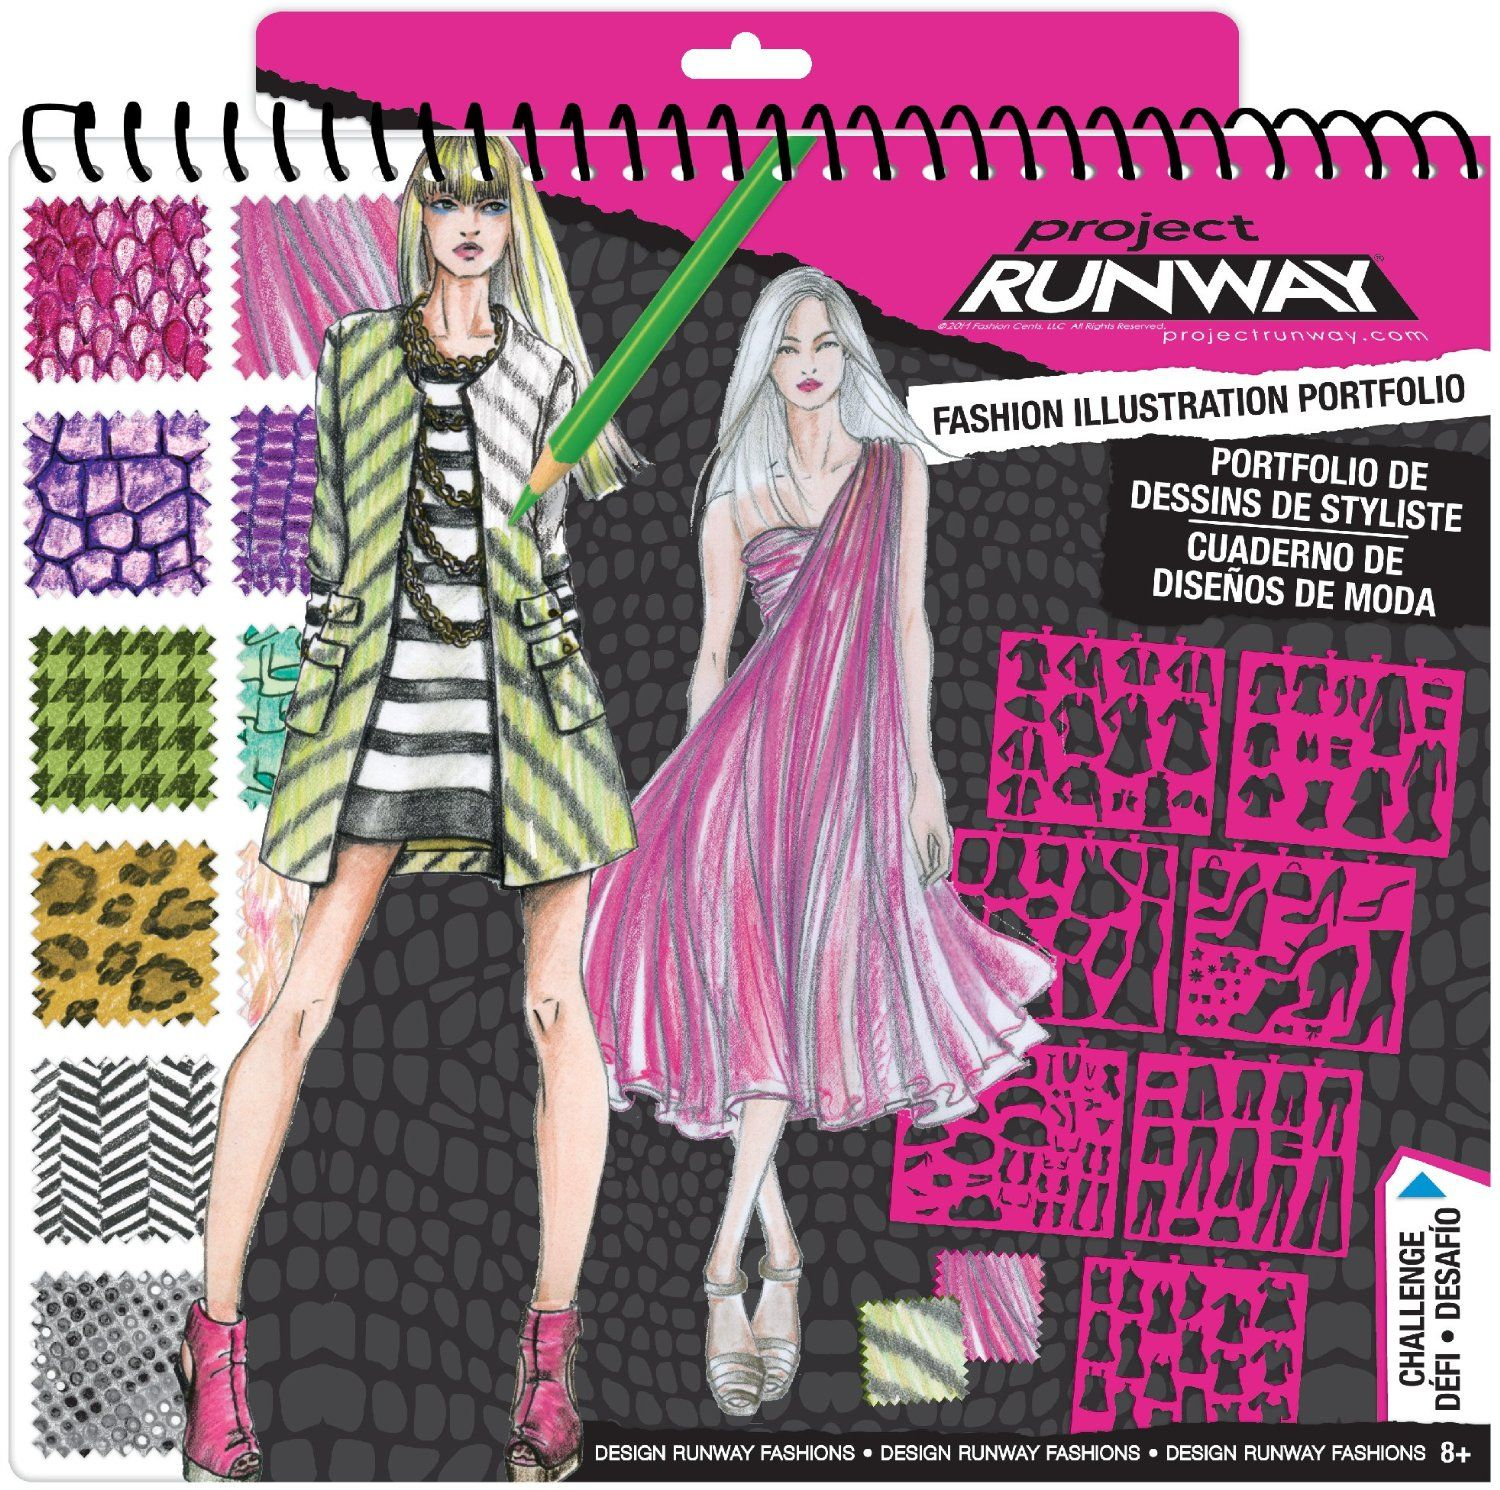 Amazon Com Project Runway Fashion Design Sketch Portfolio Toys Games Tween Girl Gifts Project Runway Fashion Illustration Portfolio